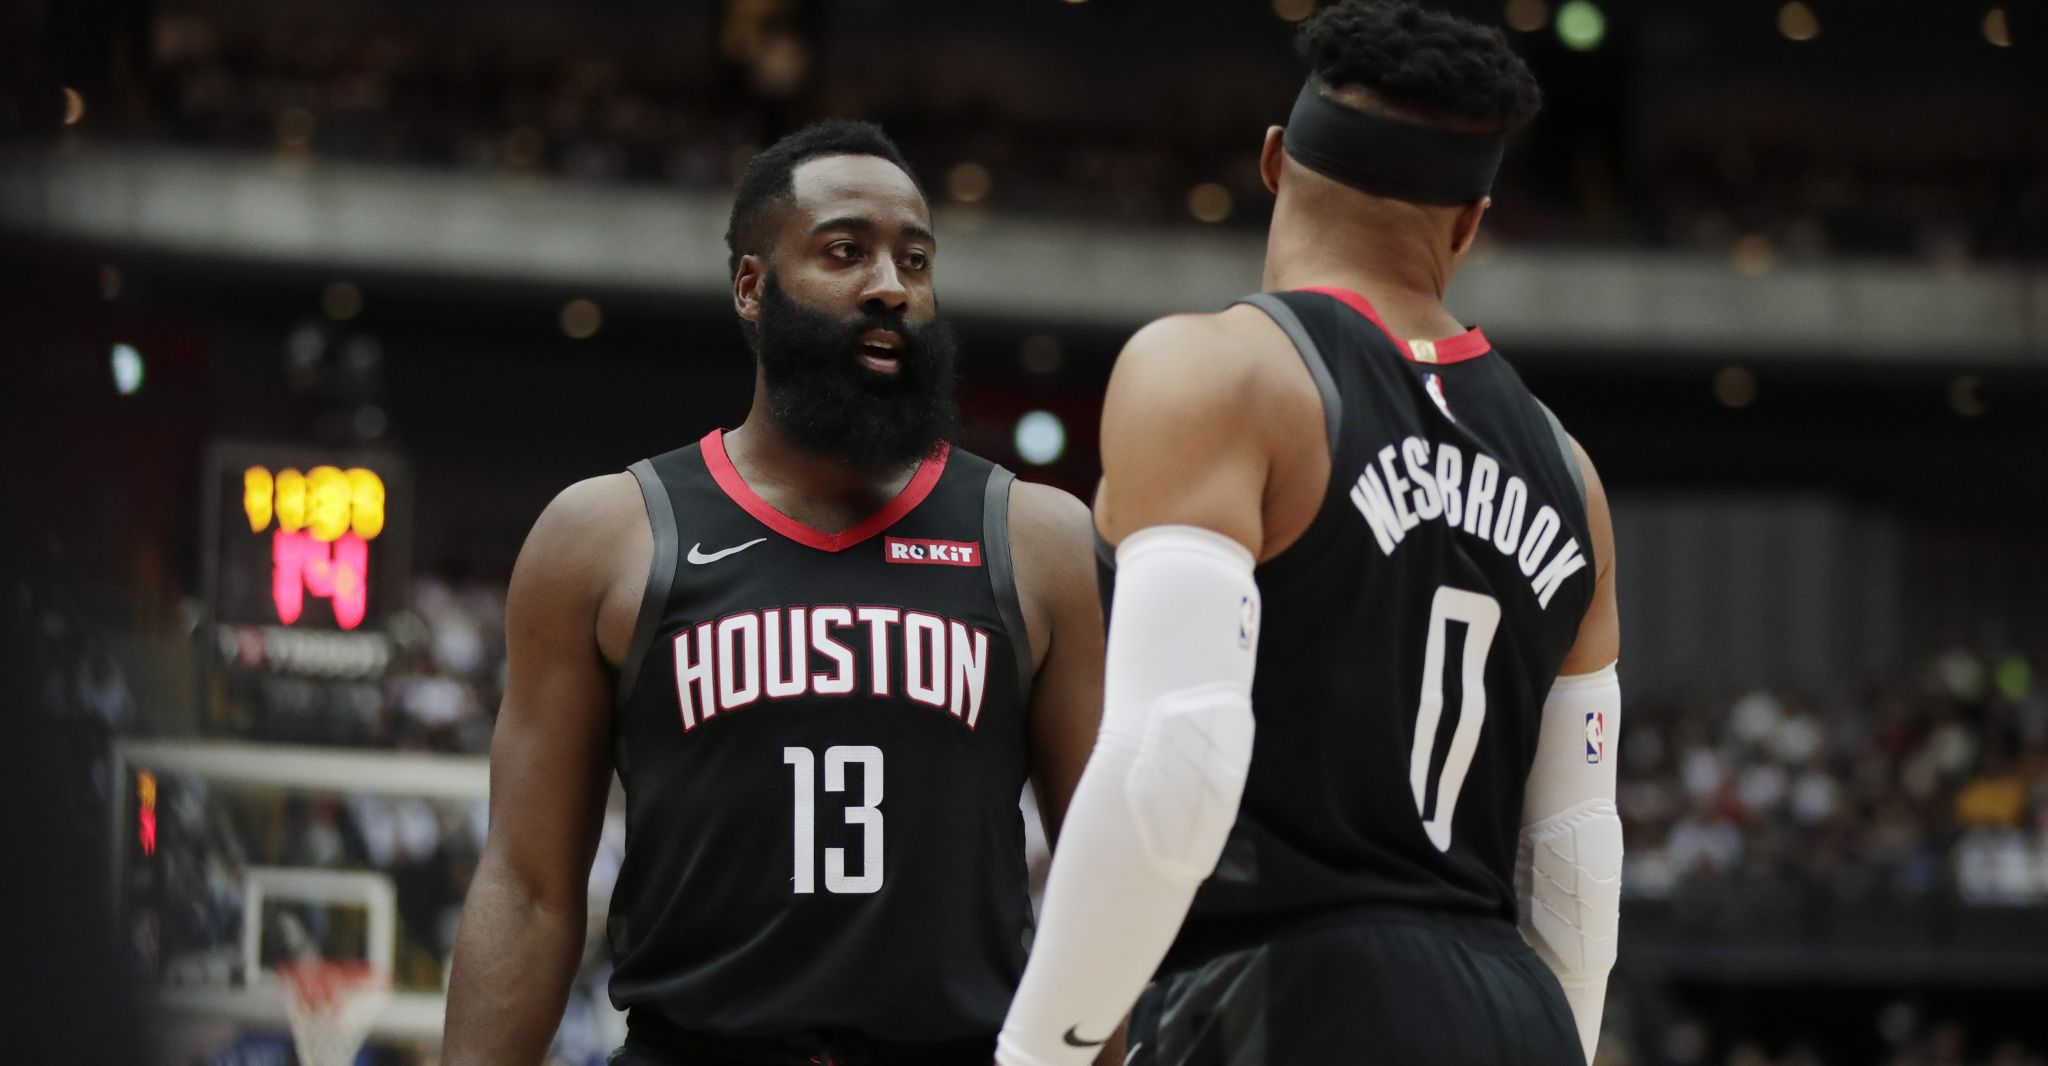 Heat's Erik Spoelstra expects James Harden, Russell Westbrook will 'figure it out'